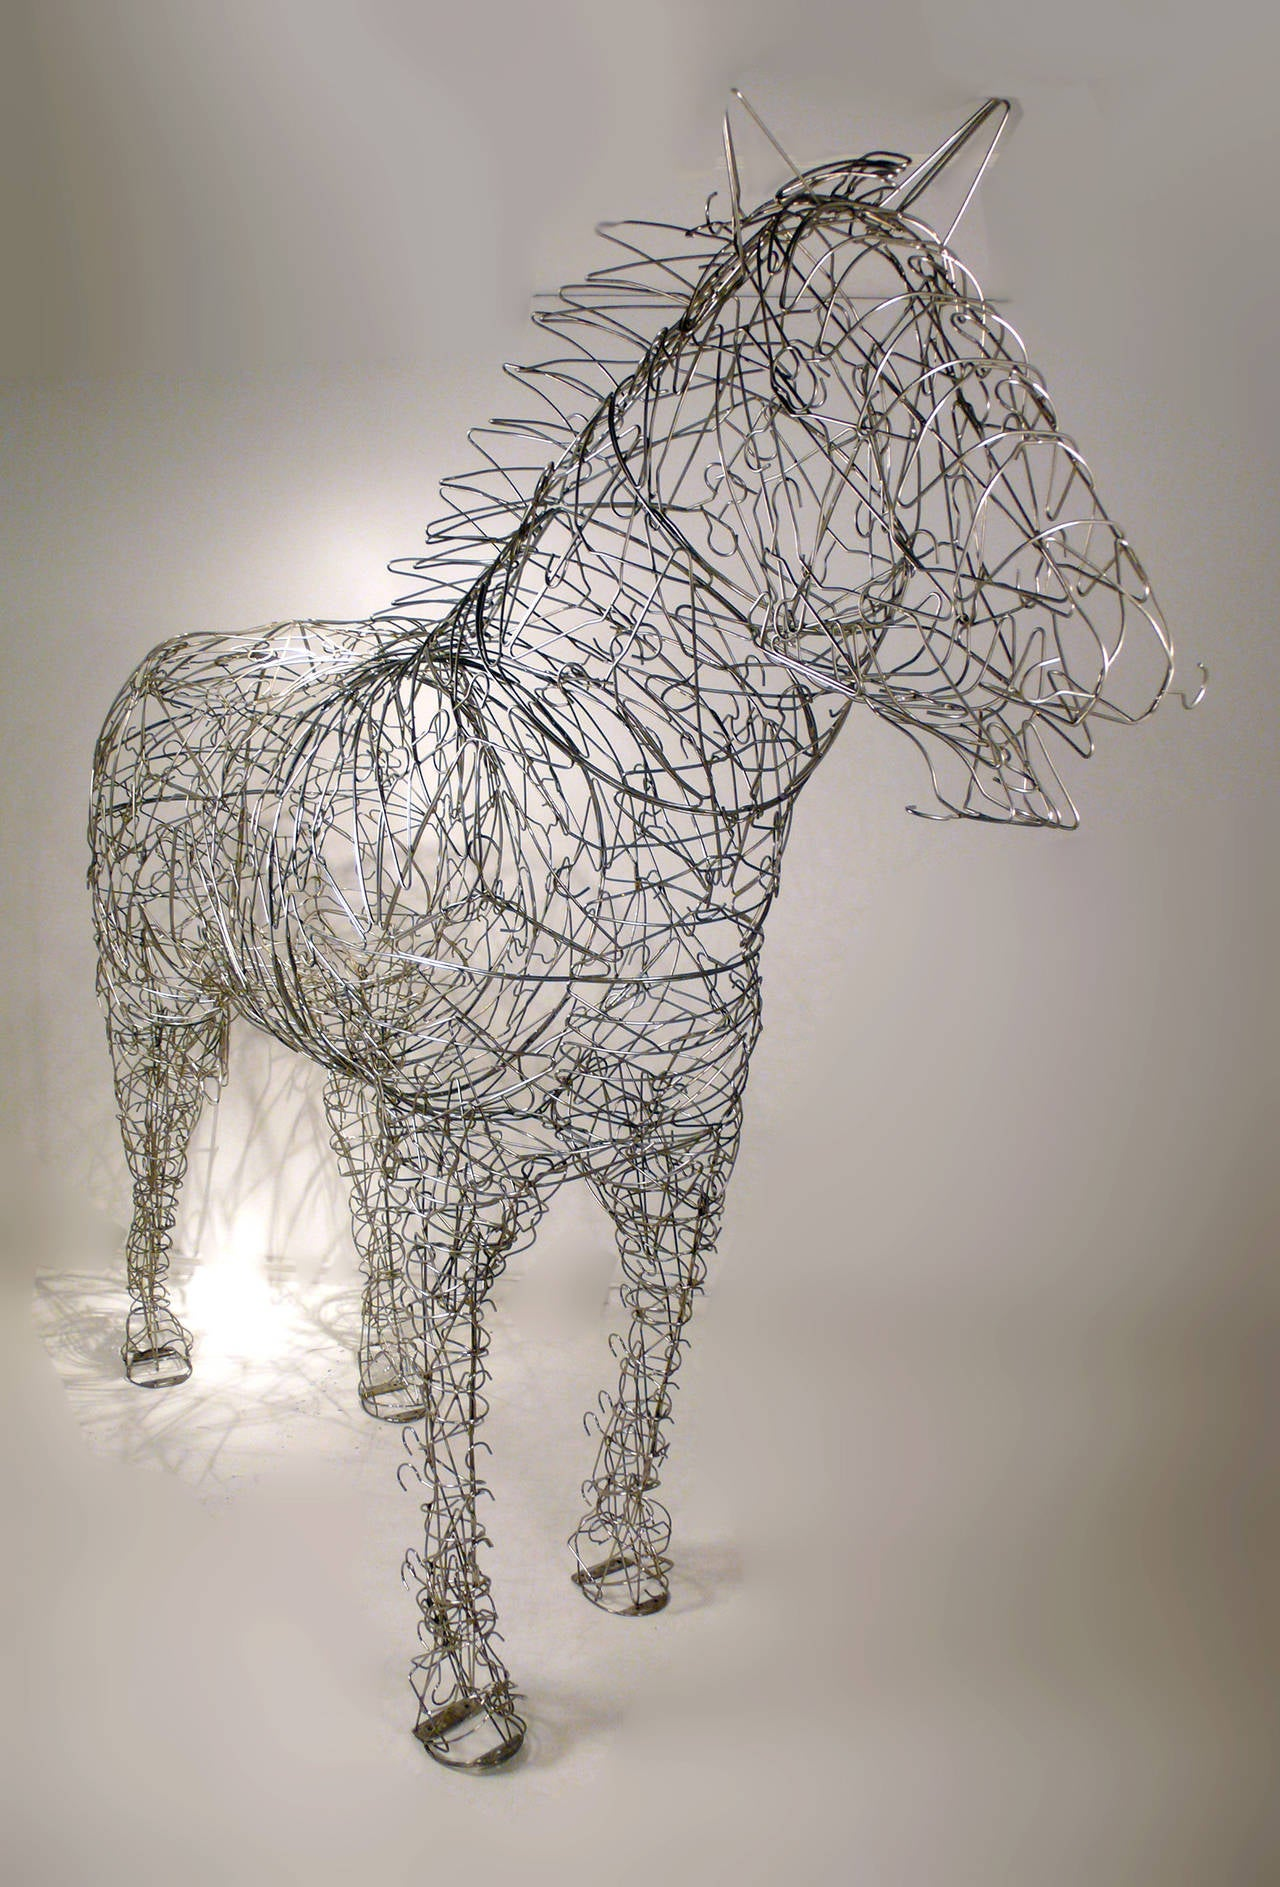 Canadian Massive Horse Sculpture Crafted From 1000 Chrome Coat Hangers for Barneys NY For Sale